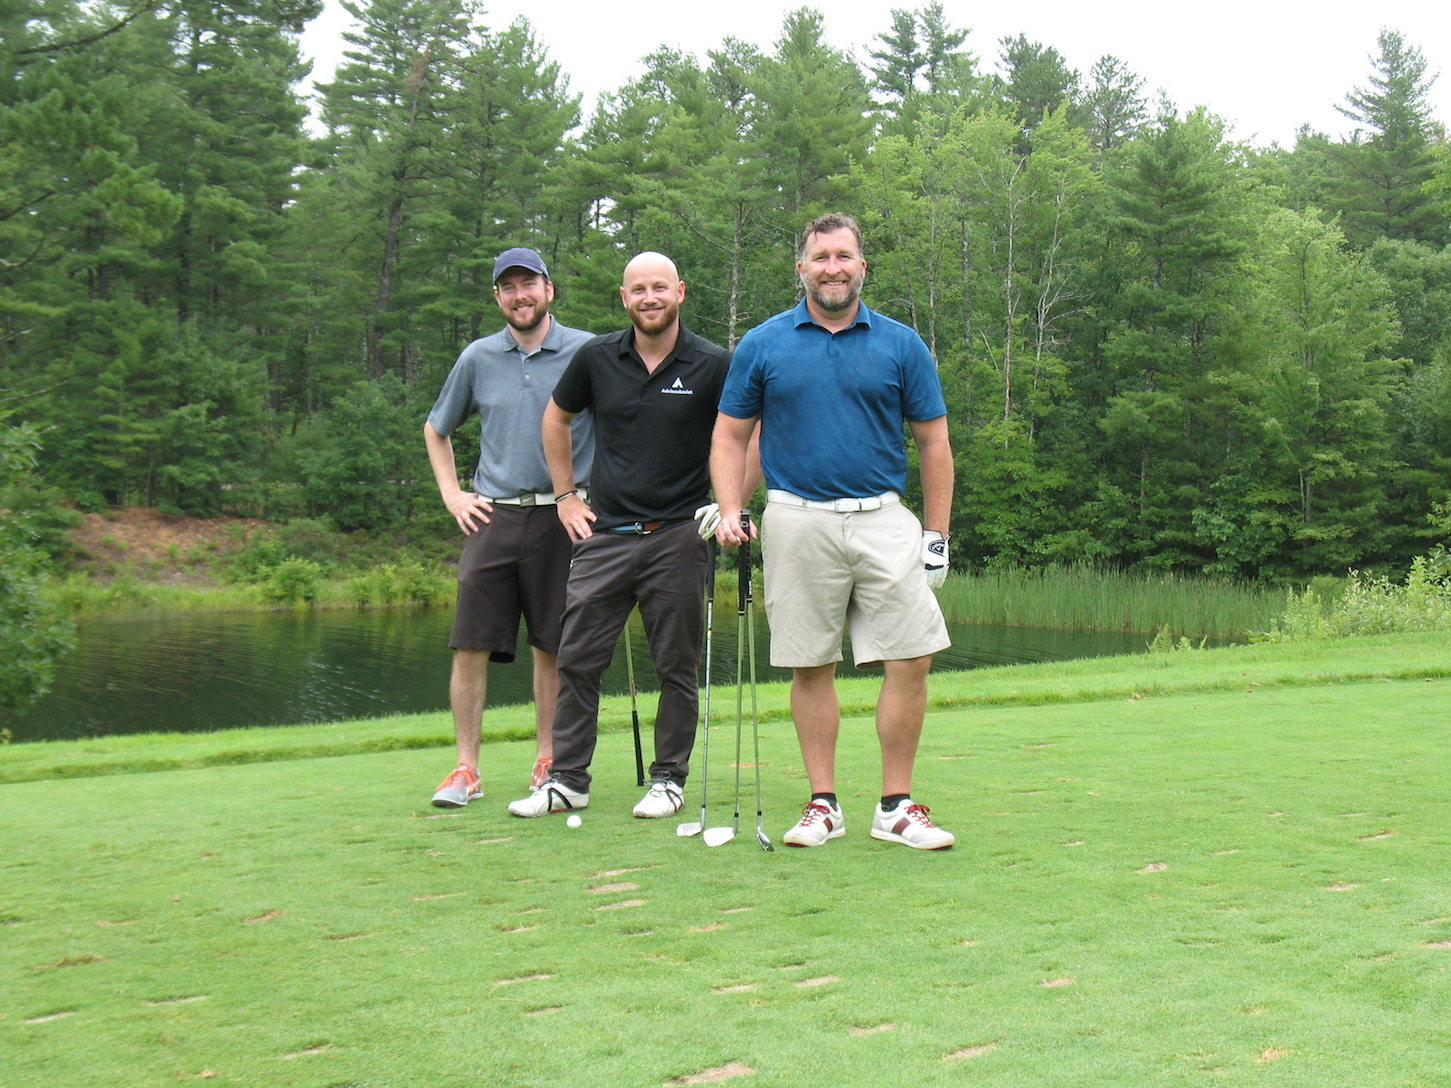 The Ferris Capital team is having a great day out on the course!